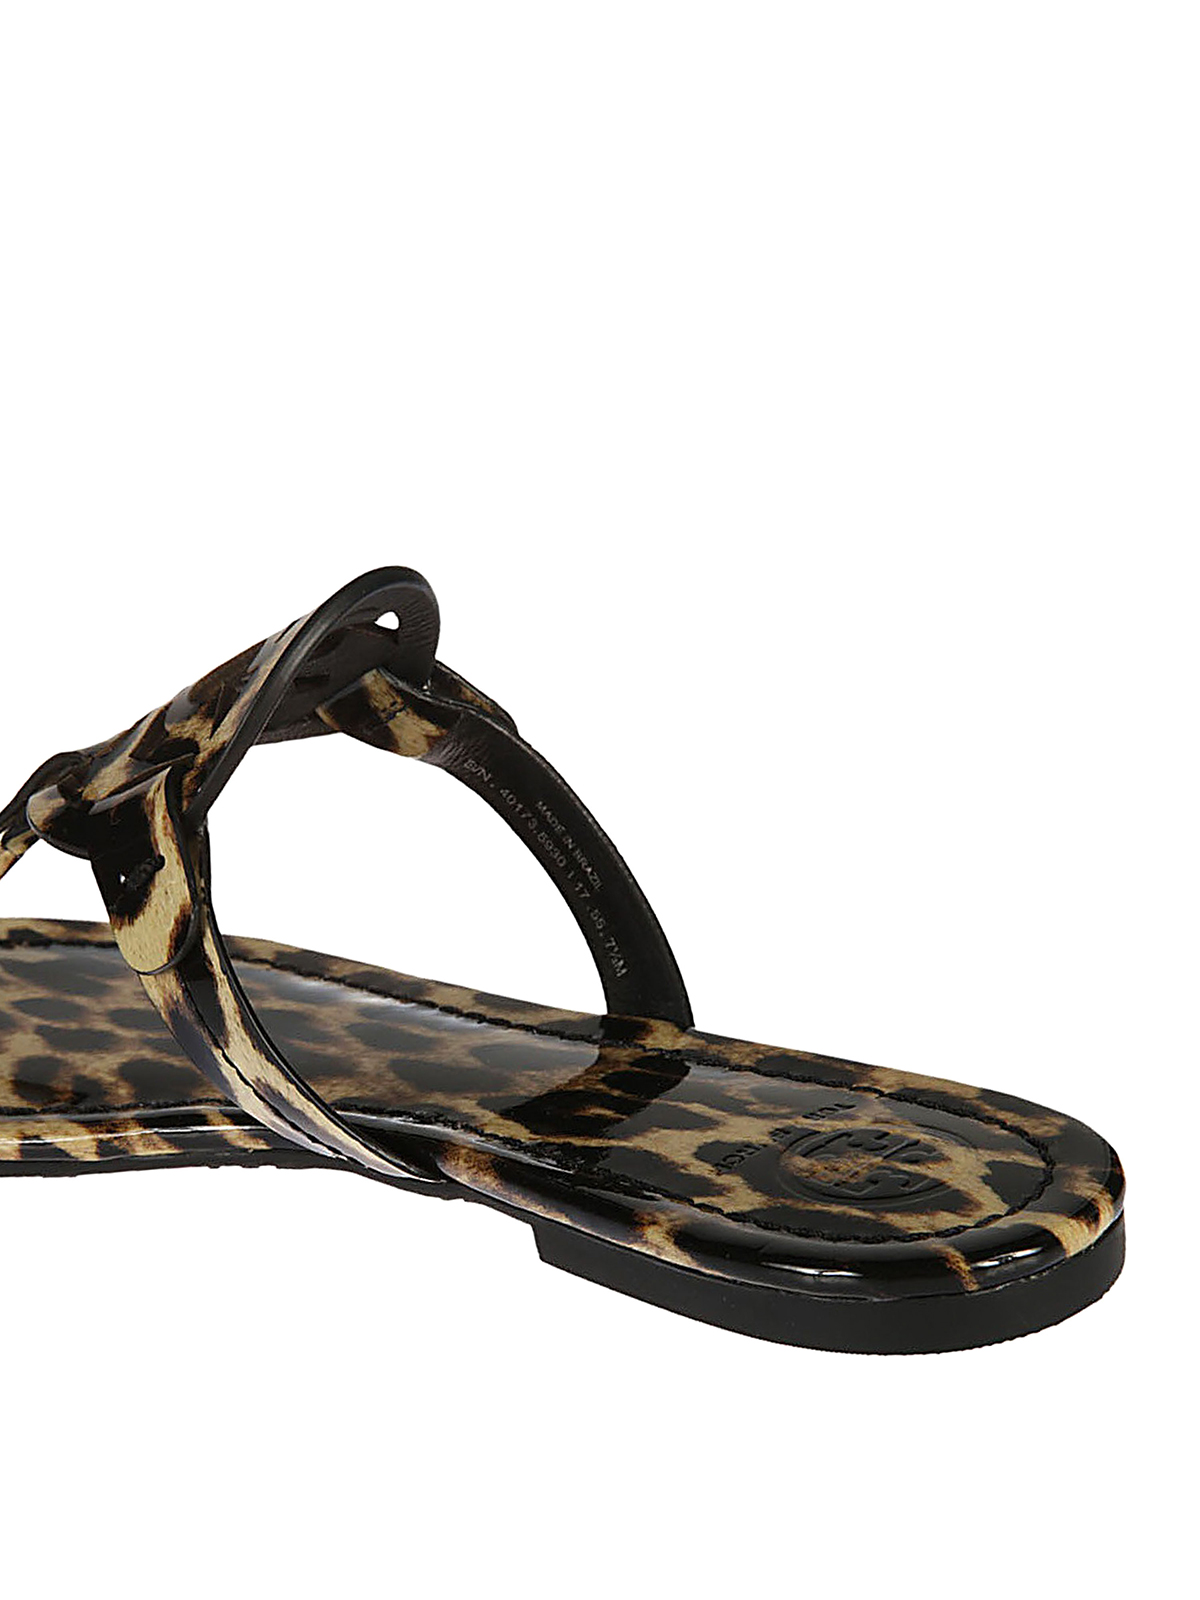 7af5b2f62756b Tory Burch - Miller leather sandals - sandals - 40173 221